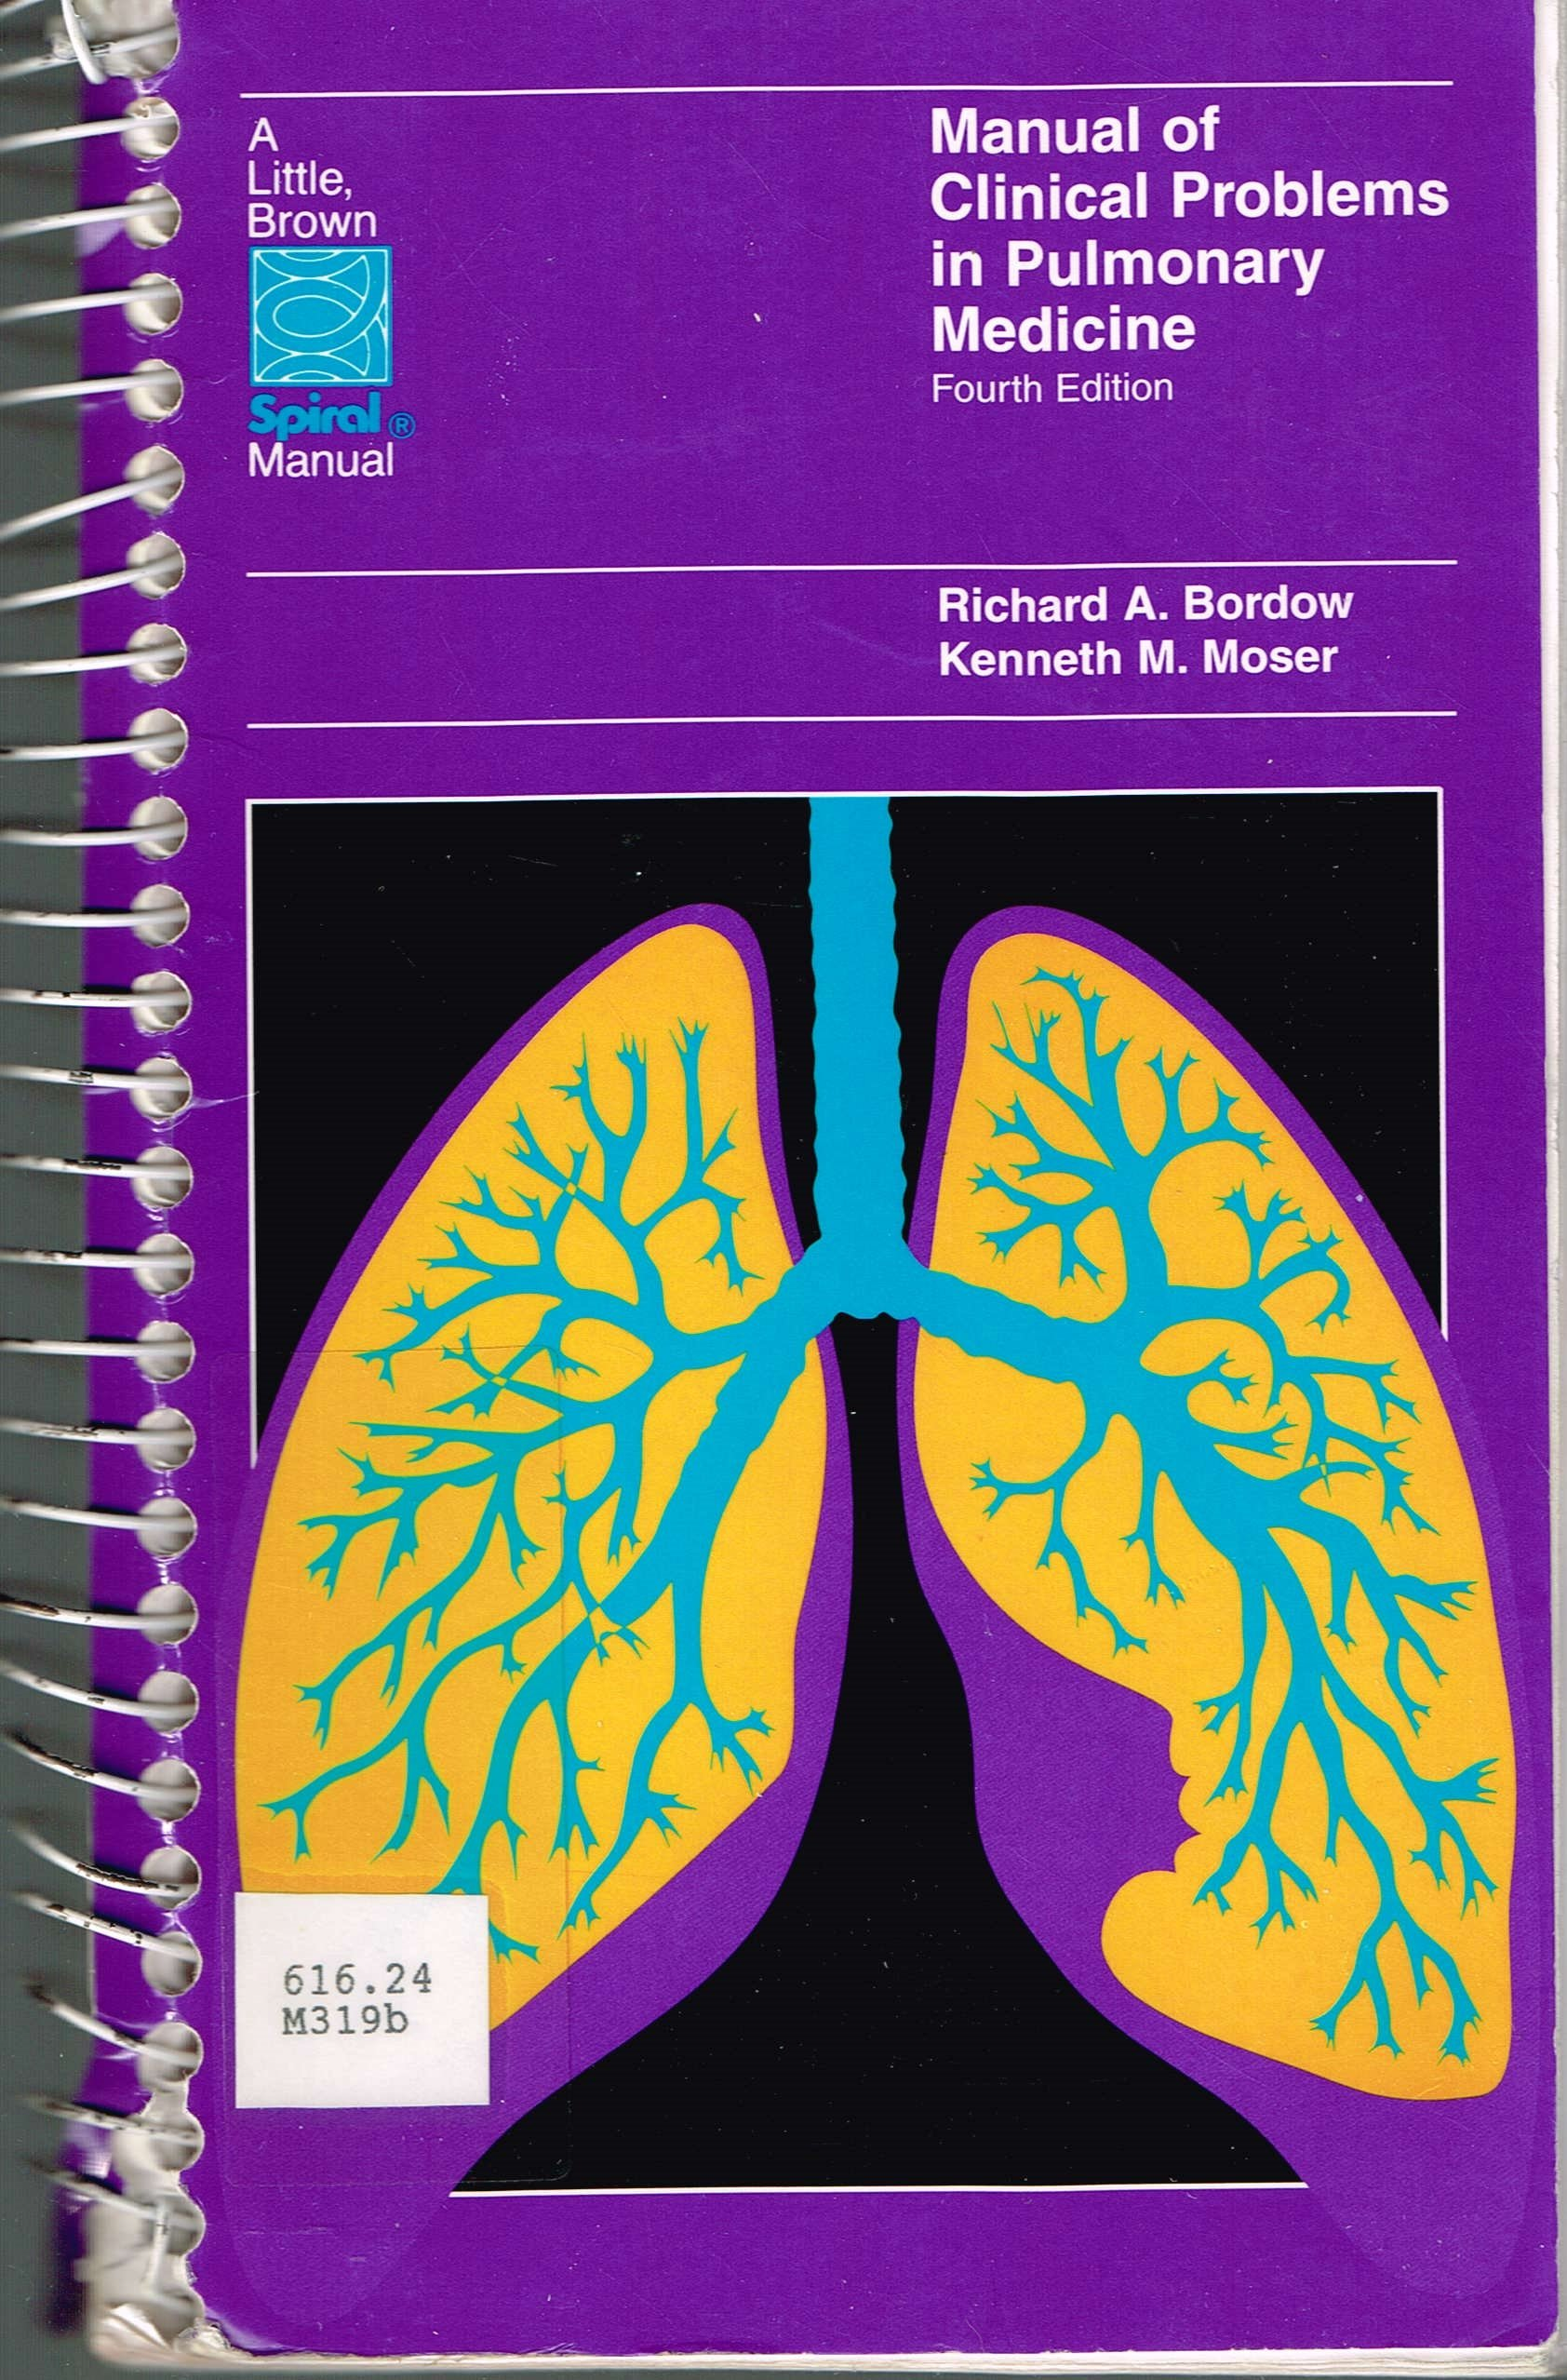 Buy Manual of Clinical Problems in Pulmonary Medicine (Spiral Manual  Series) Book Online at Low Prices in India   Manual of Clinical Problems in  Pulmonary ...